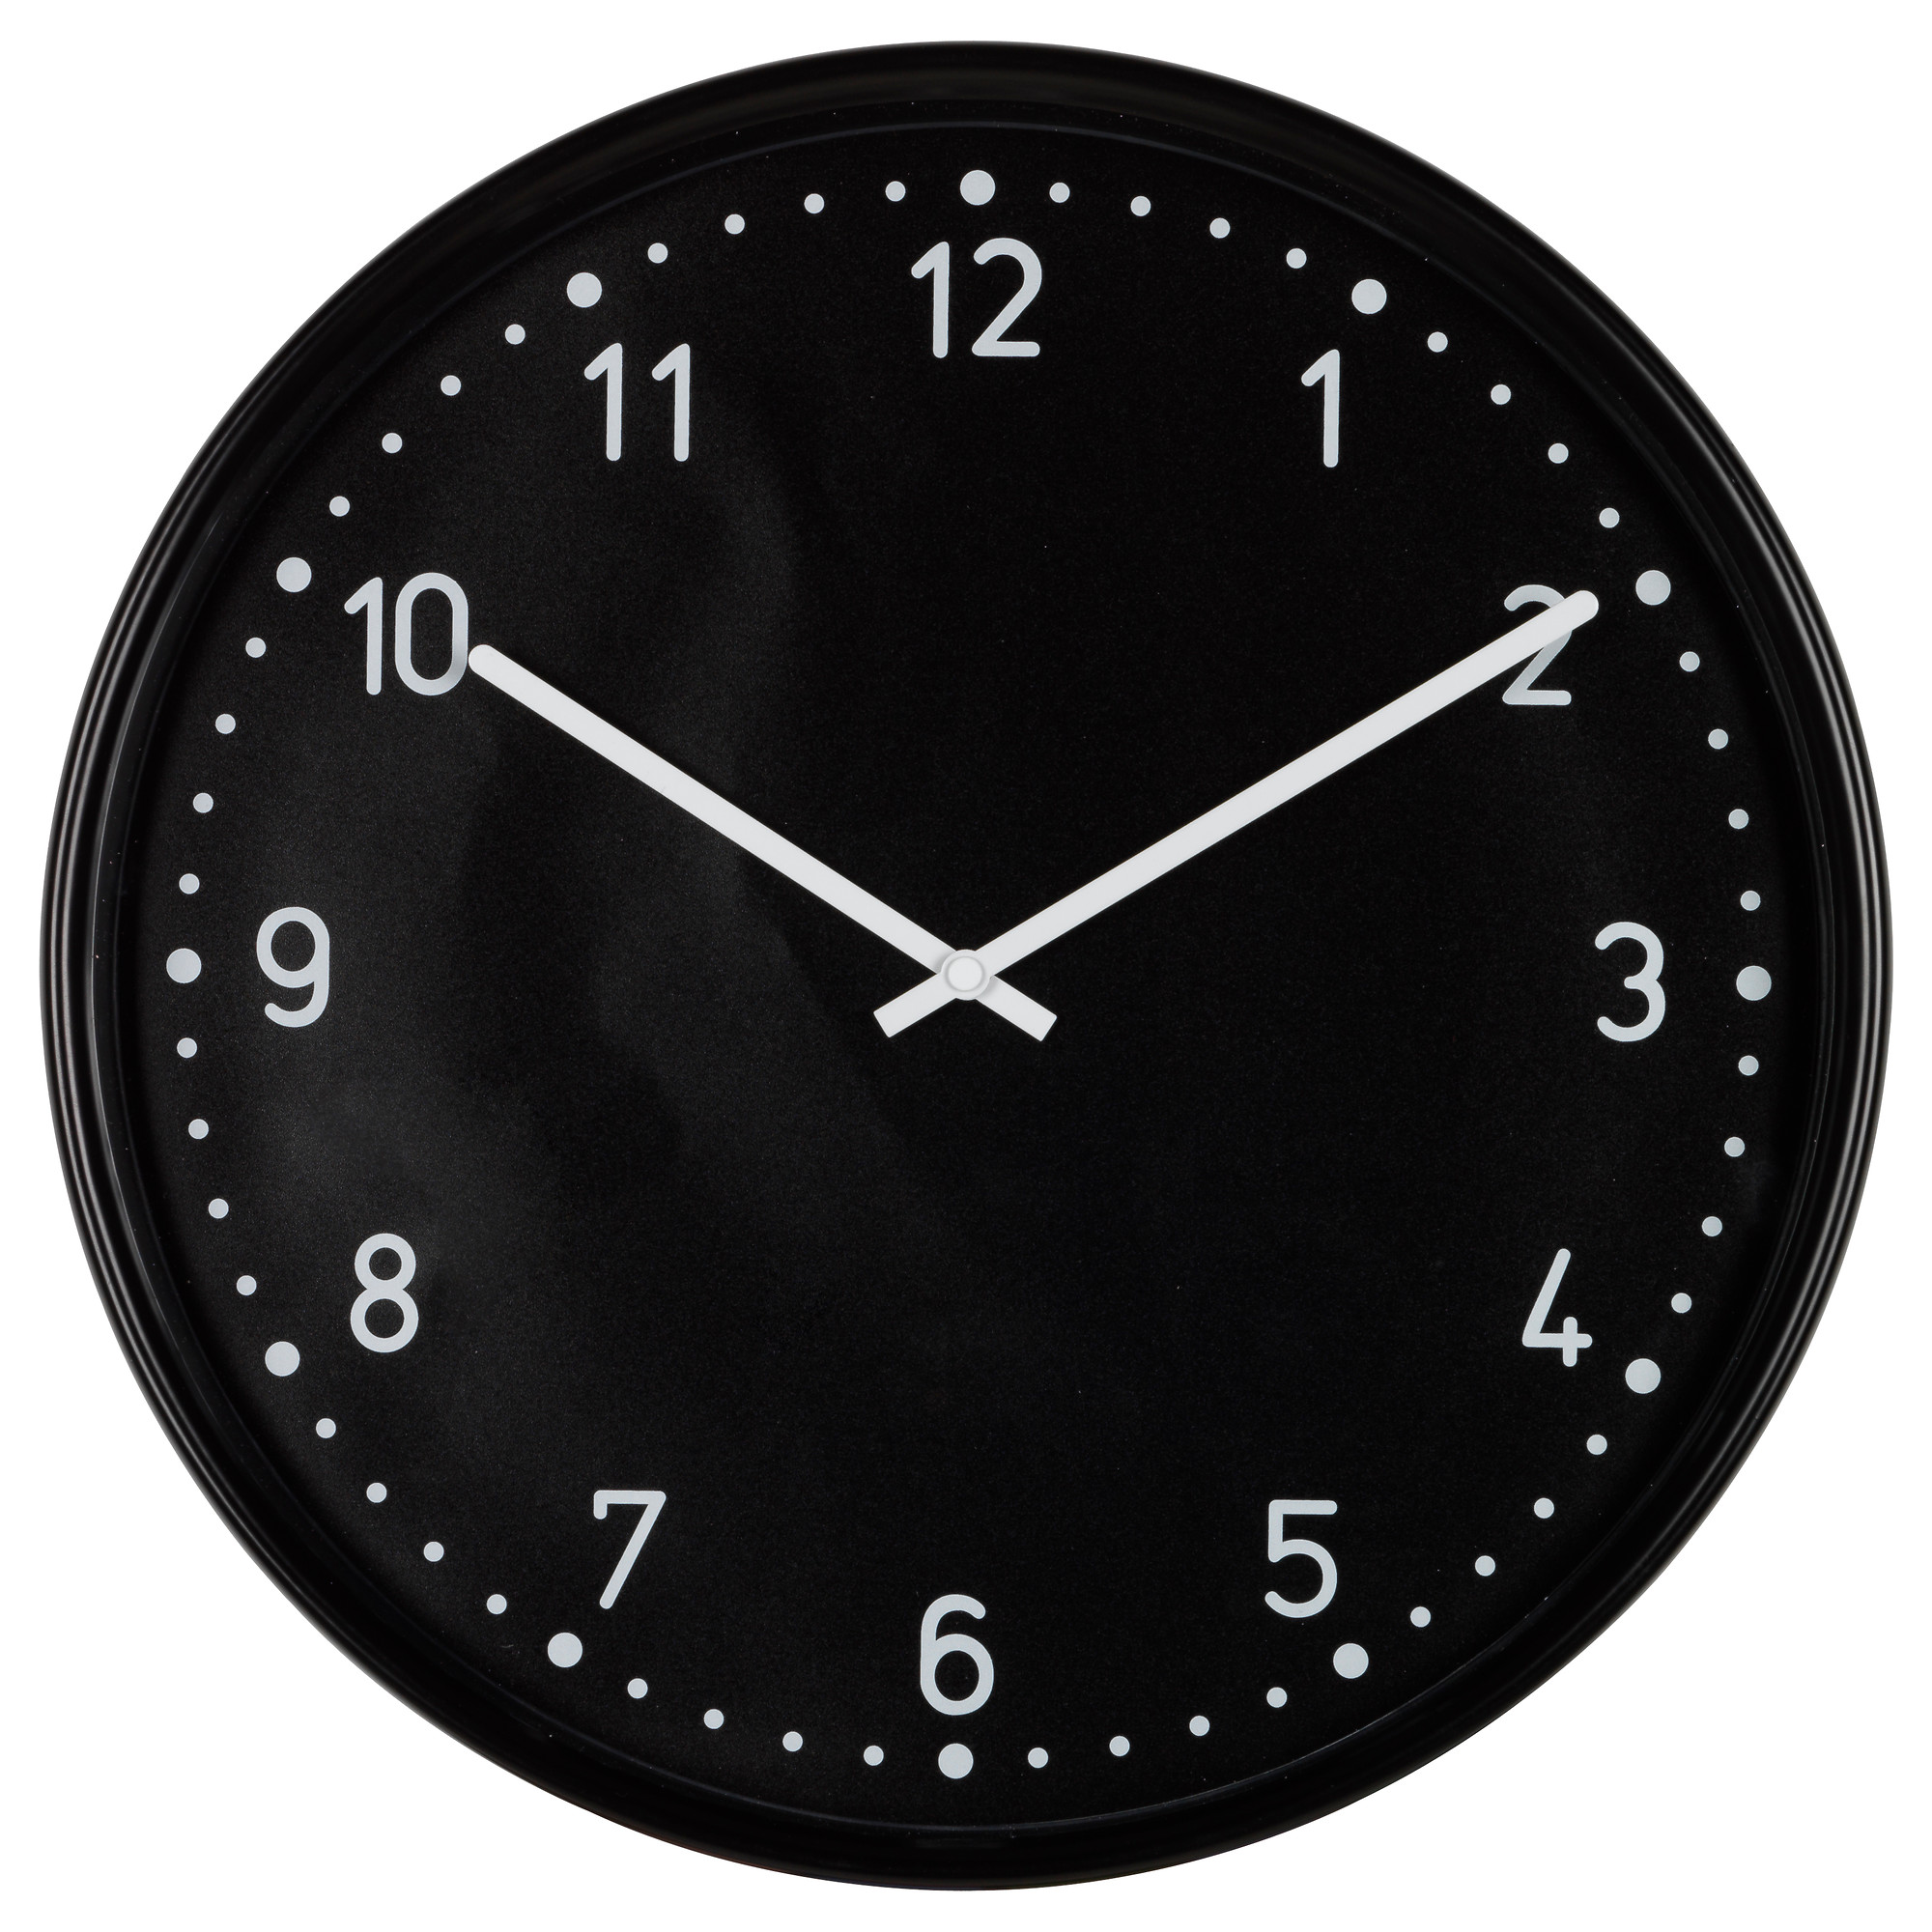 wall clocks  table clocks  ikea - bondis wall clock black depth  ½  diameter   depth